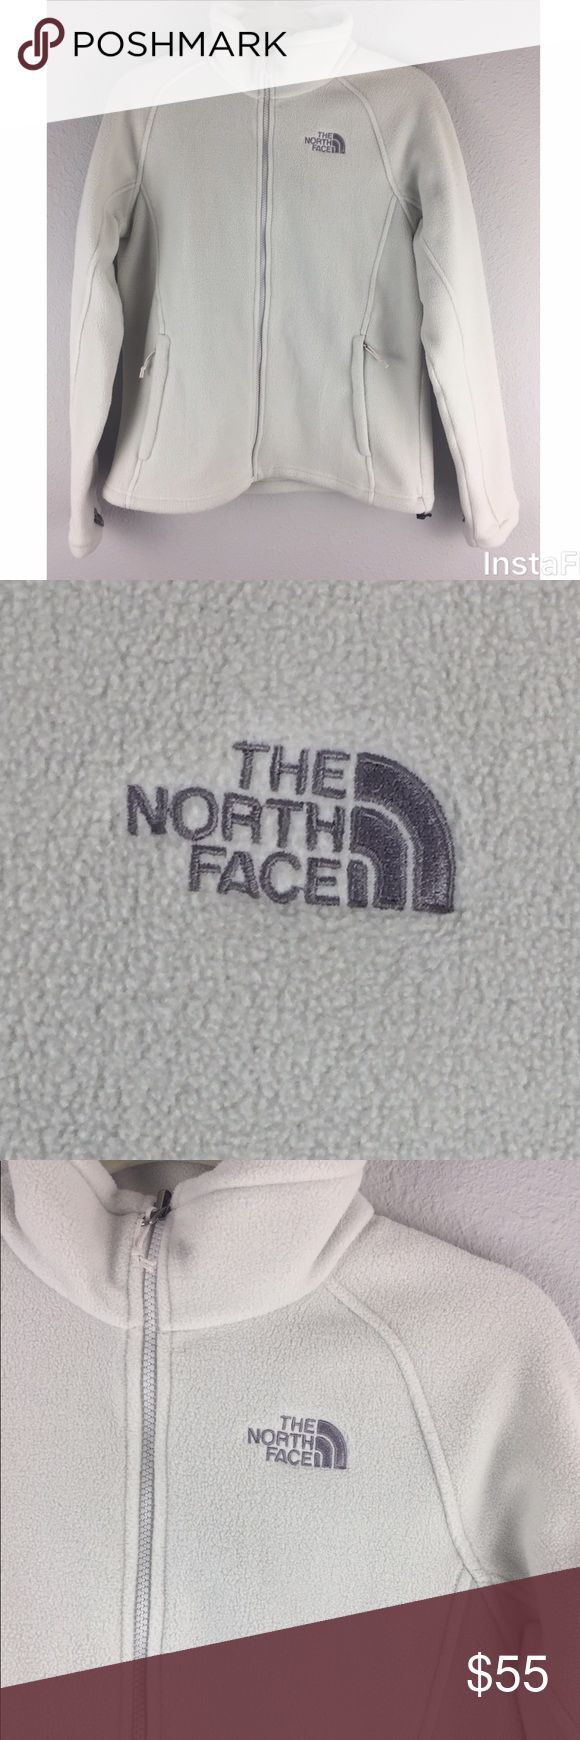 {North Face} NWOT Osito White Zip Up Jacket Fleece New With Out Tags. North Face Osito zip up jacket fleece. Grey North Face logo on the front and back. Two Zip front pockets. Size Medium. 100% Polyester. 💲All Reasonable Offers Welcomed💲 North Face Jackets & Coats